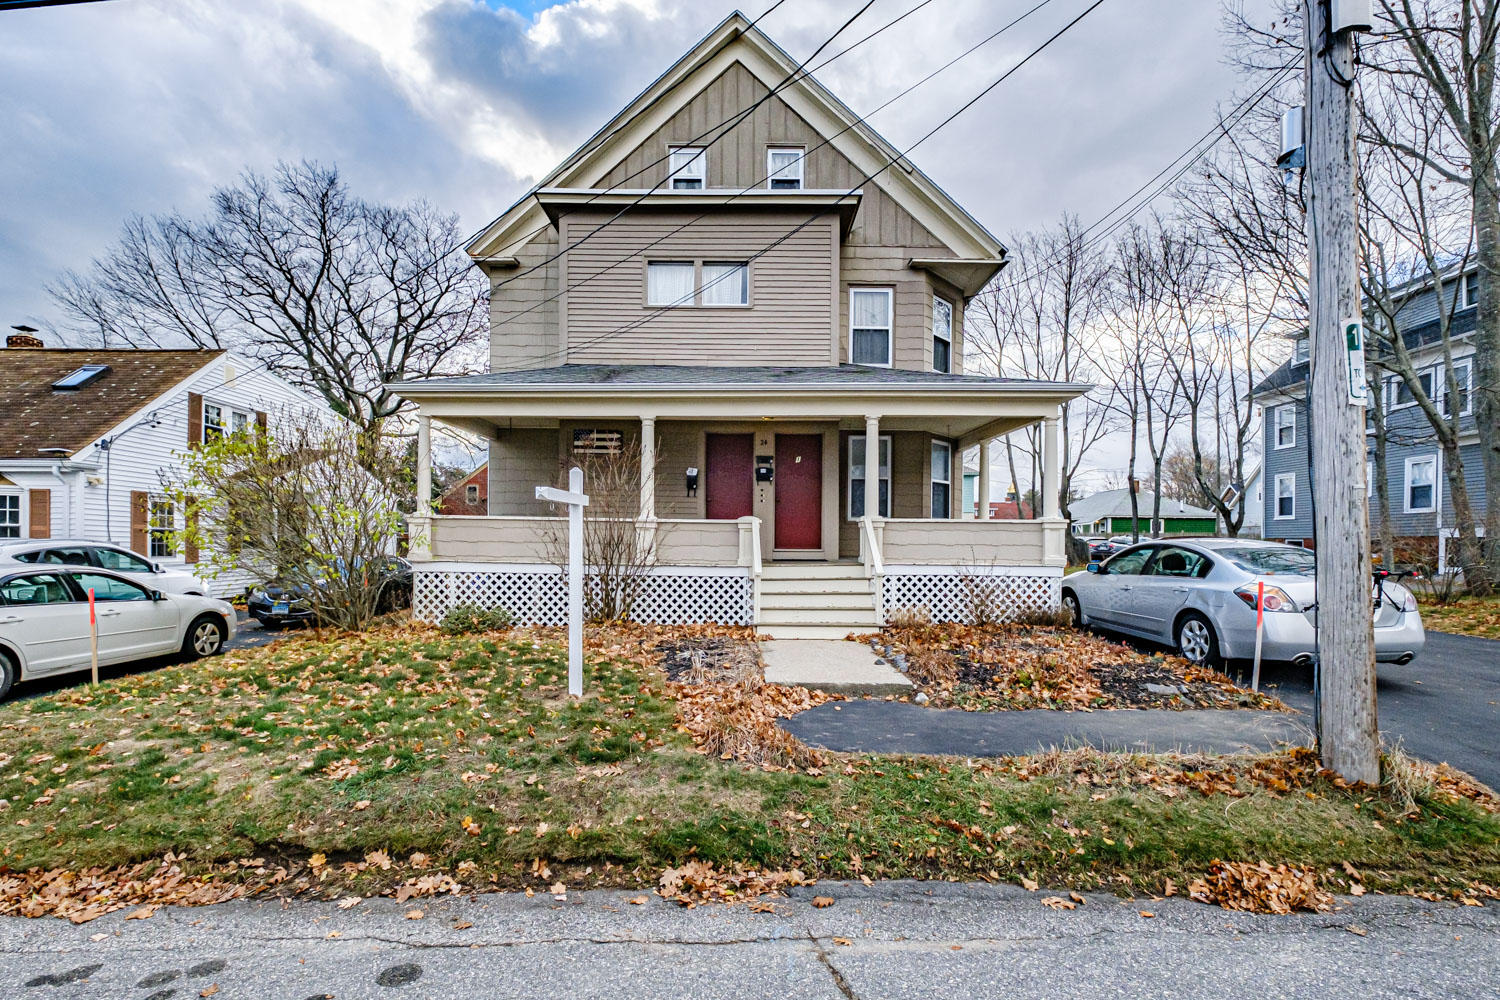 Main image for MLS listing 1475957